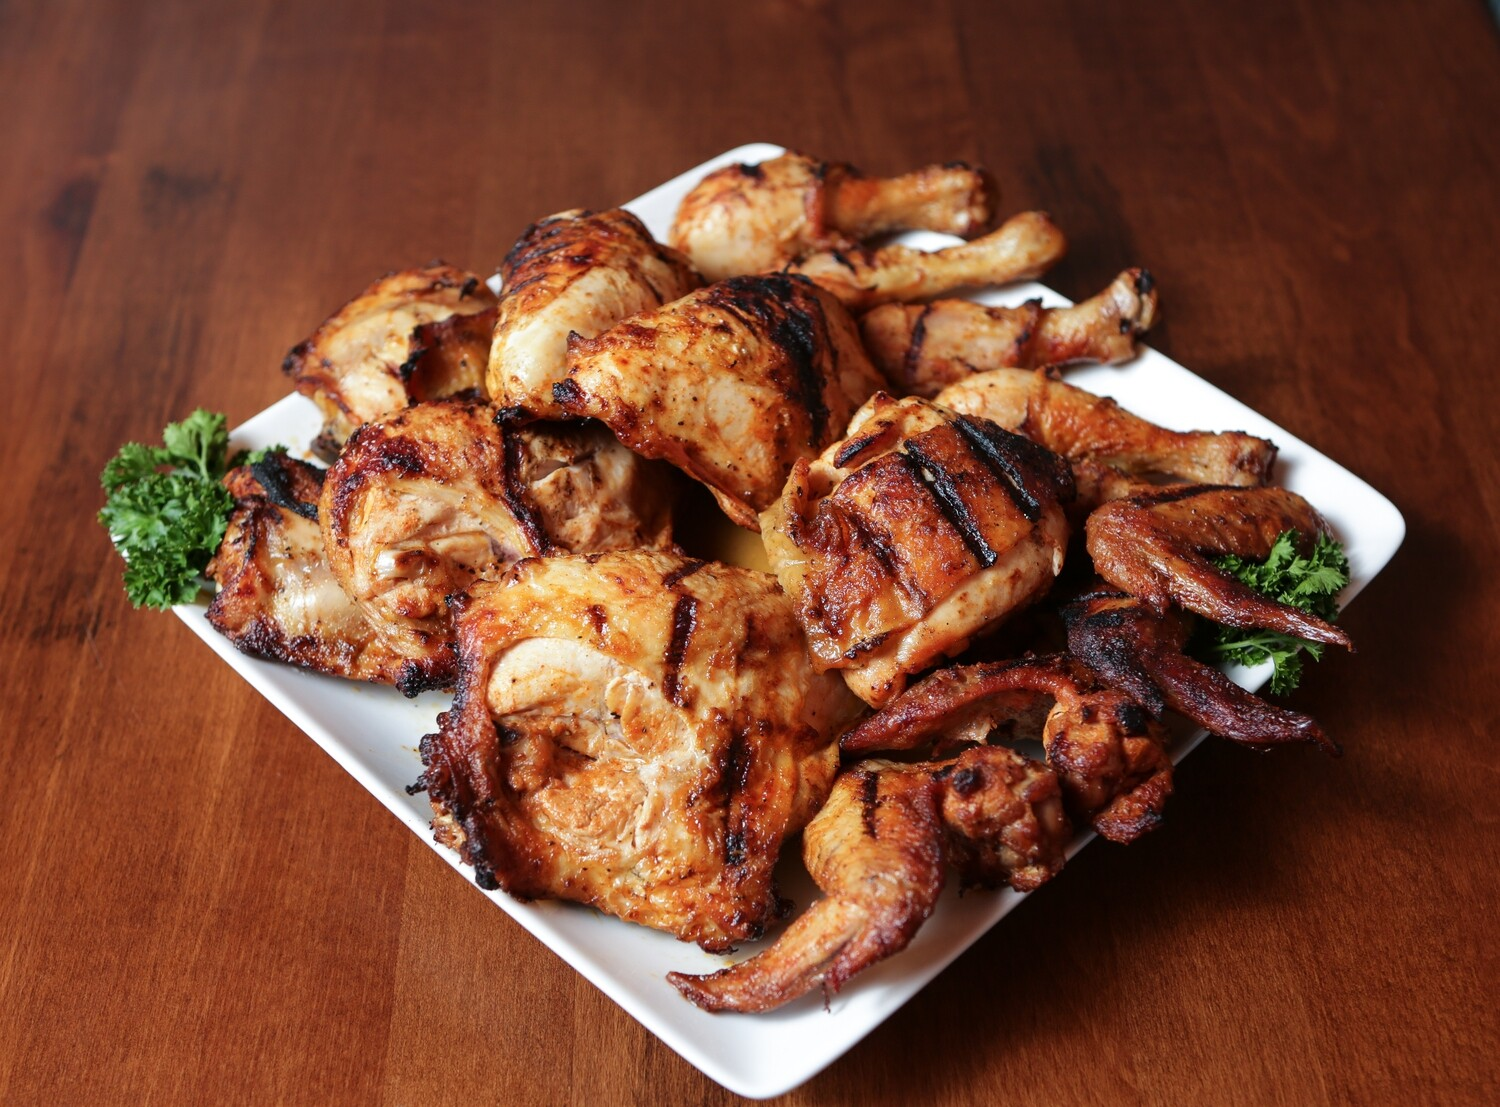 Grill Chicken (Leg and Thigh or Mix)